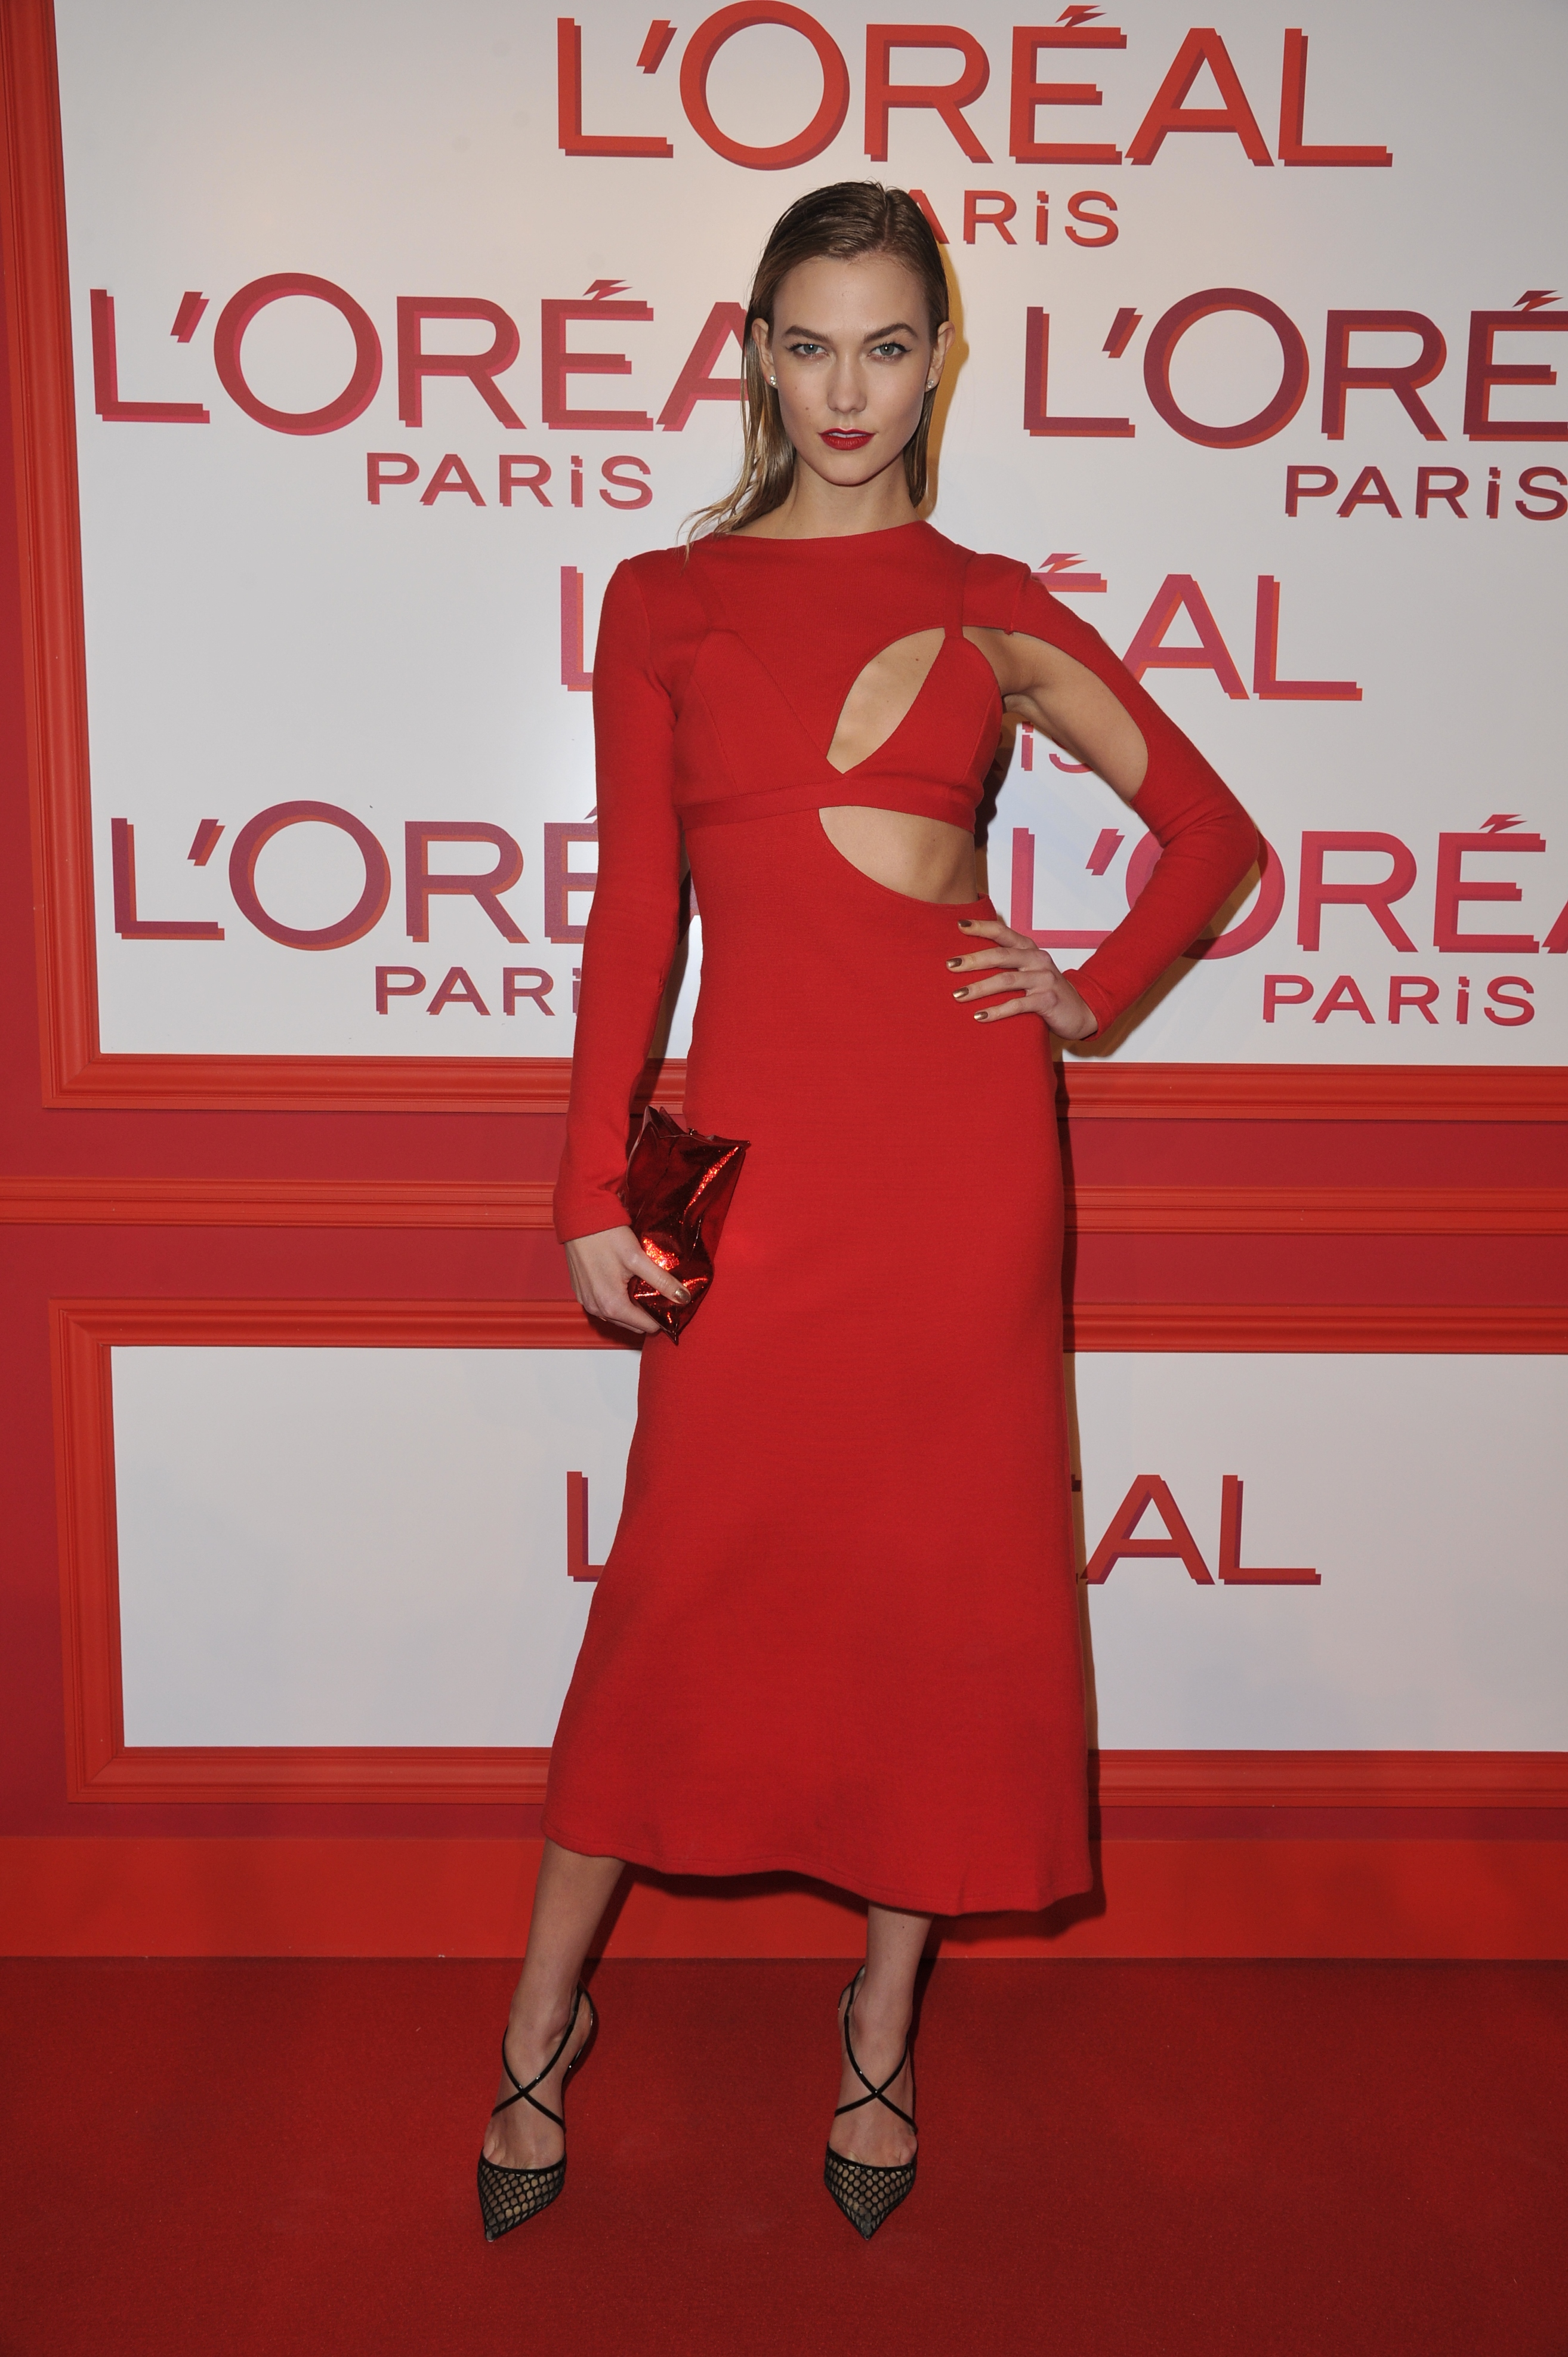 L'Oreal Paris Fashion Week red obsession party